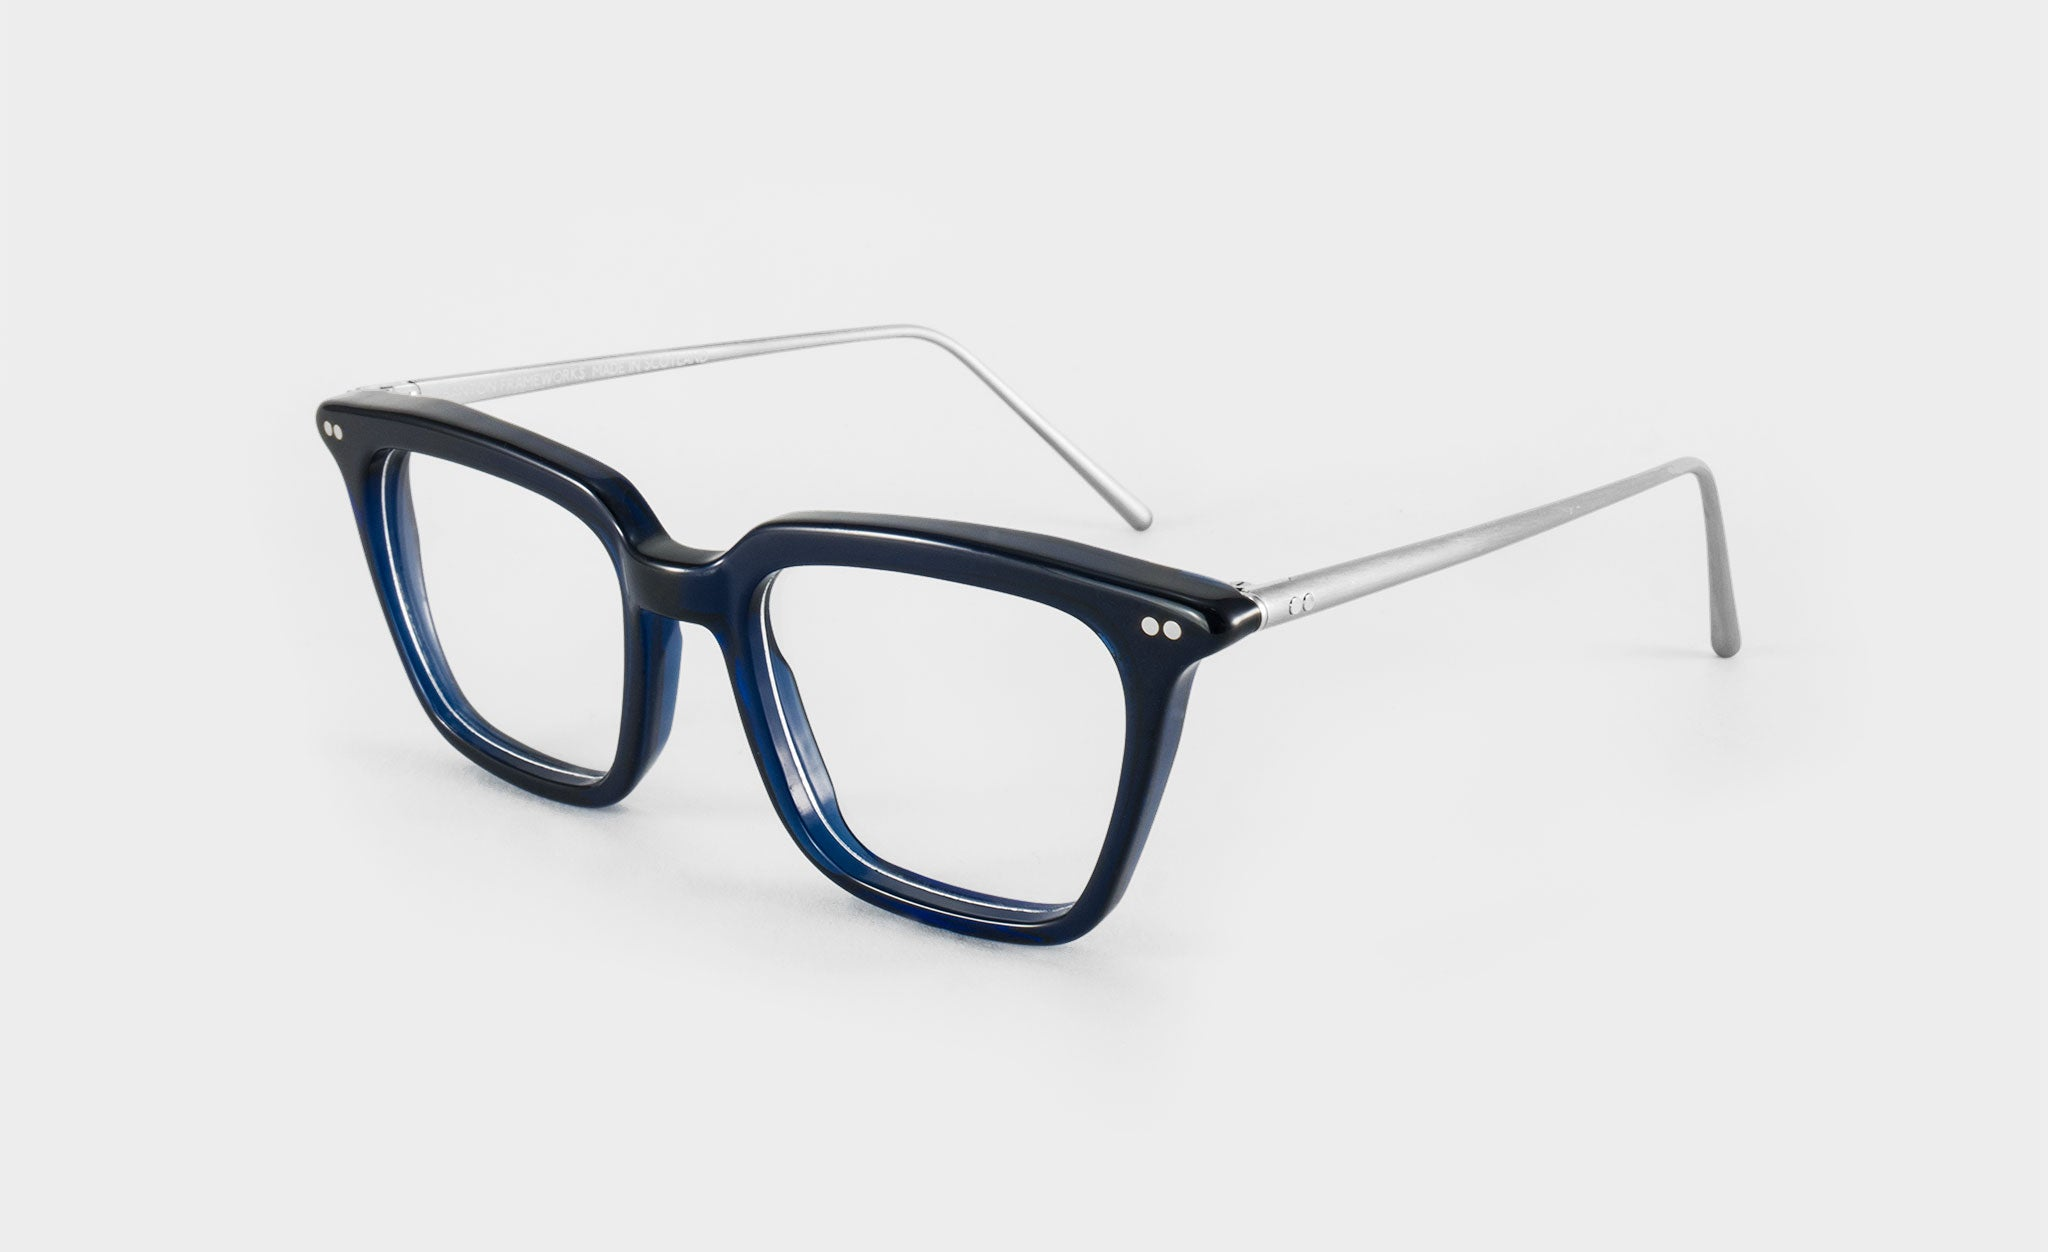 Womens Blue Glasses Frame side view